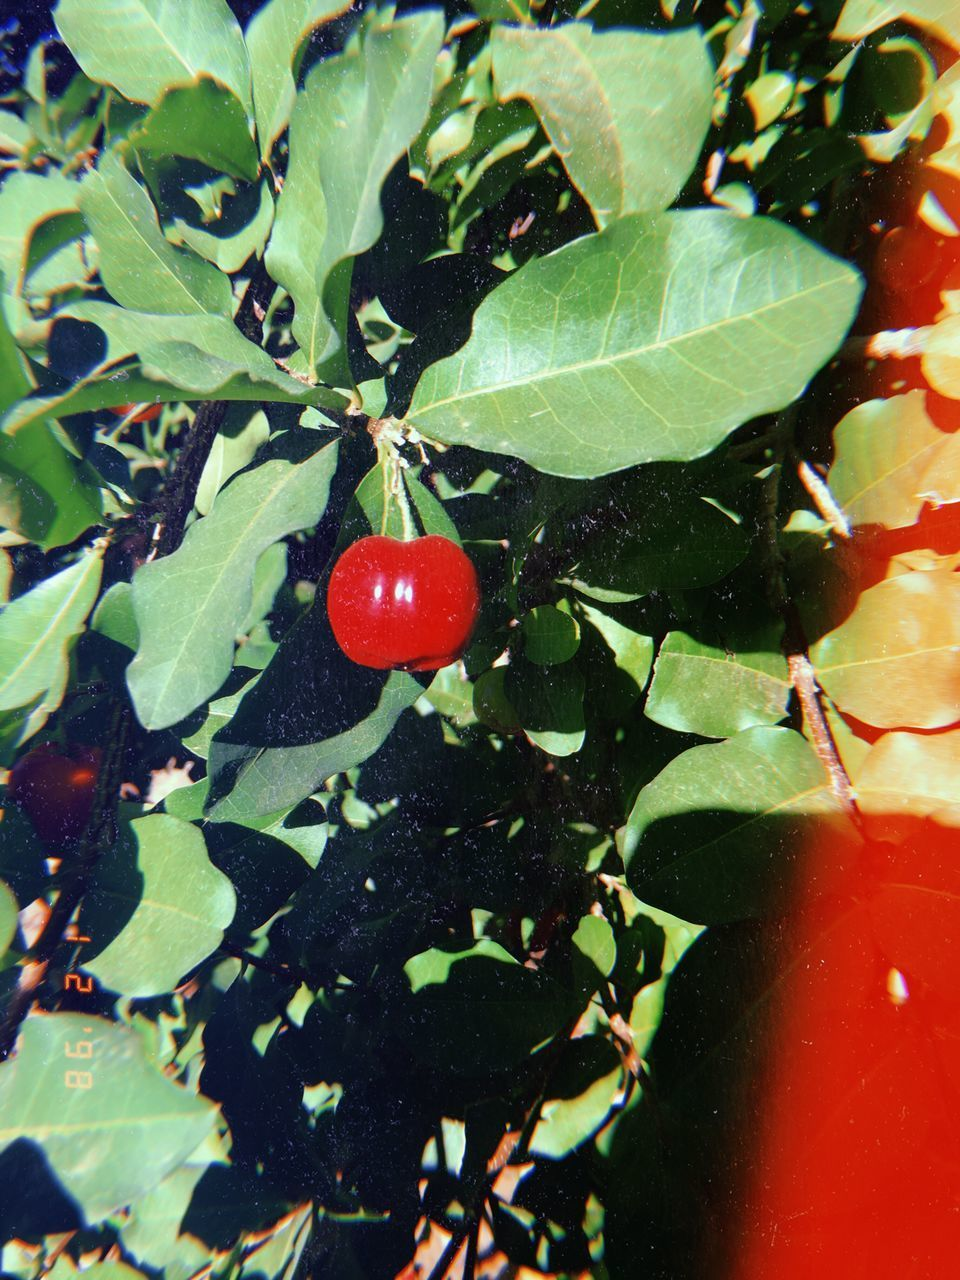 red, fruit, plant part, leaf, healthy eating, food, food and drink, plant, freshness, growth, wellbeing, close-up, nature, green color, no people, day, ripe, beauty in nature, tree, outdoors